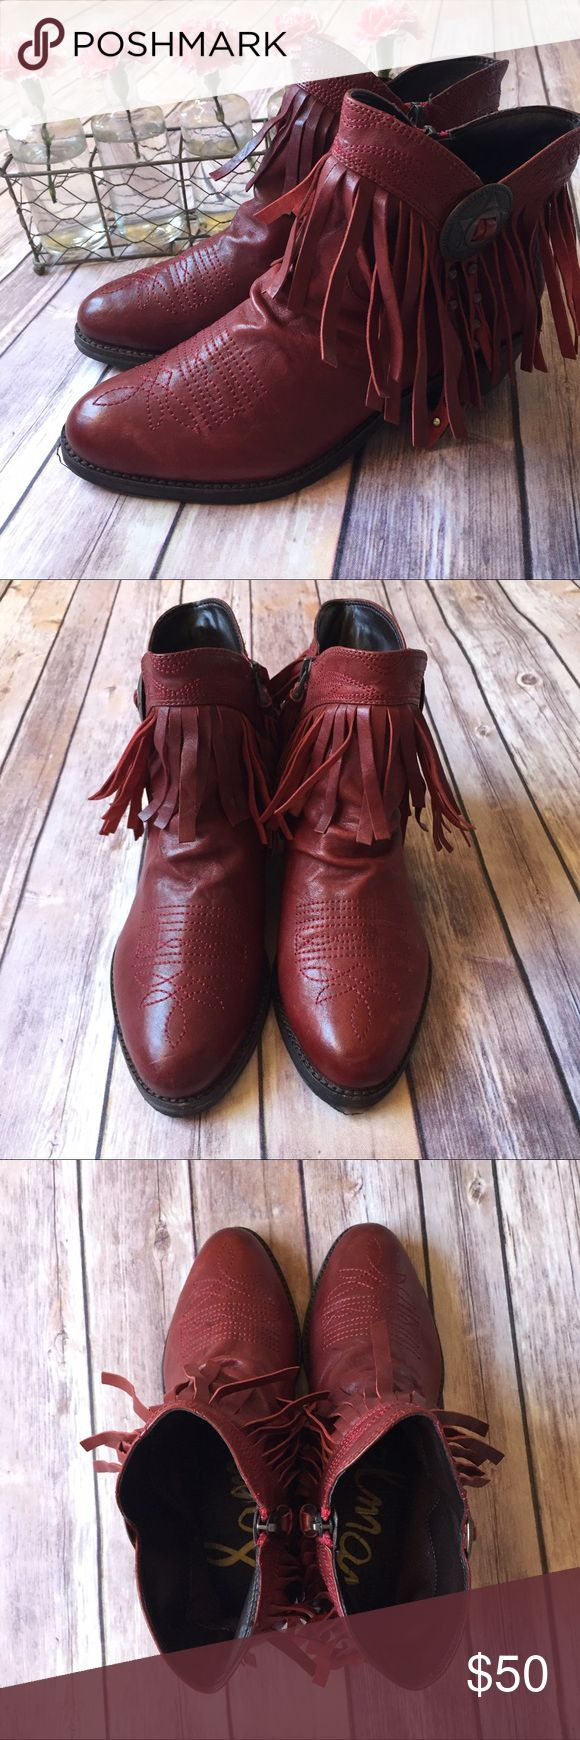 "Sam Edelman Women's Red Sidney Fringe Boot Fringe and studs Marshall Western inspiration into a short boot. Approx. heel height 2"". Leather upper/synthetic lining and sole. Two strands of studded fringe drop from a lone star ornament that is truly Texas. EUC, no box.   ⭐️ Bundle & Save, Posh Rules Only ⭐️ All Offers Accepted or Countered ⭐️ Smoke and Pet Free Environment Sam Edelman Shoes Ankle Boots & Booties"